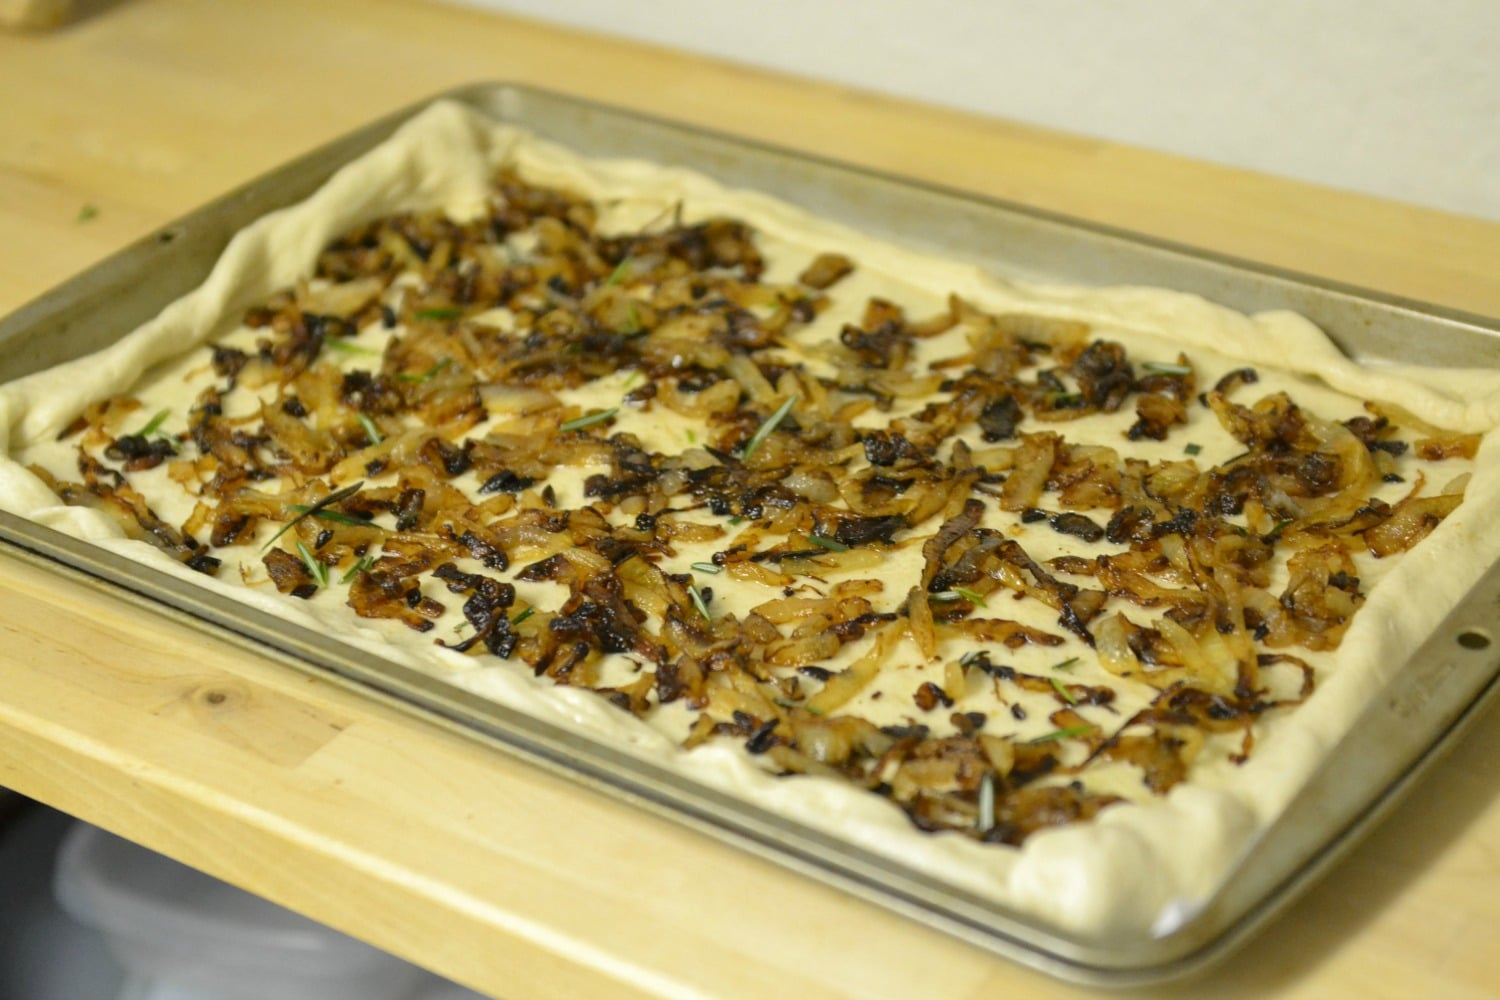 Spread caramelized onion over dough. Sprinkle with salt and fresh rosemary, then fold edges over top of onions.